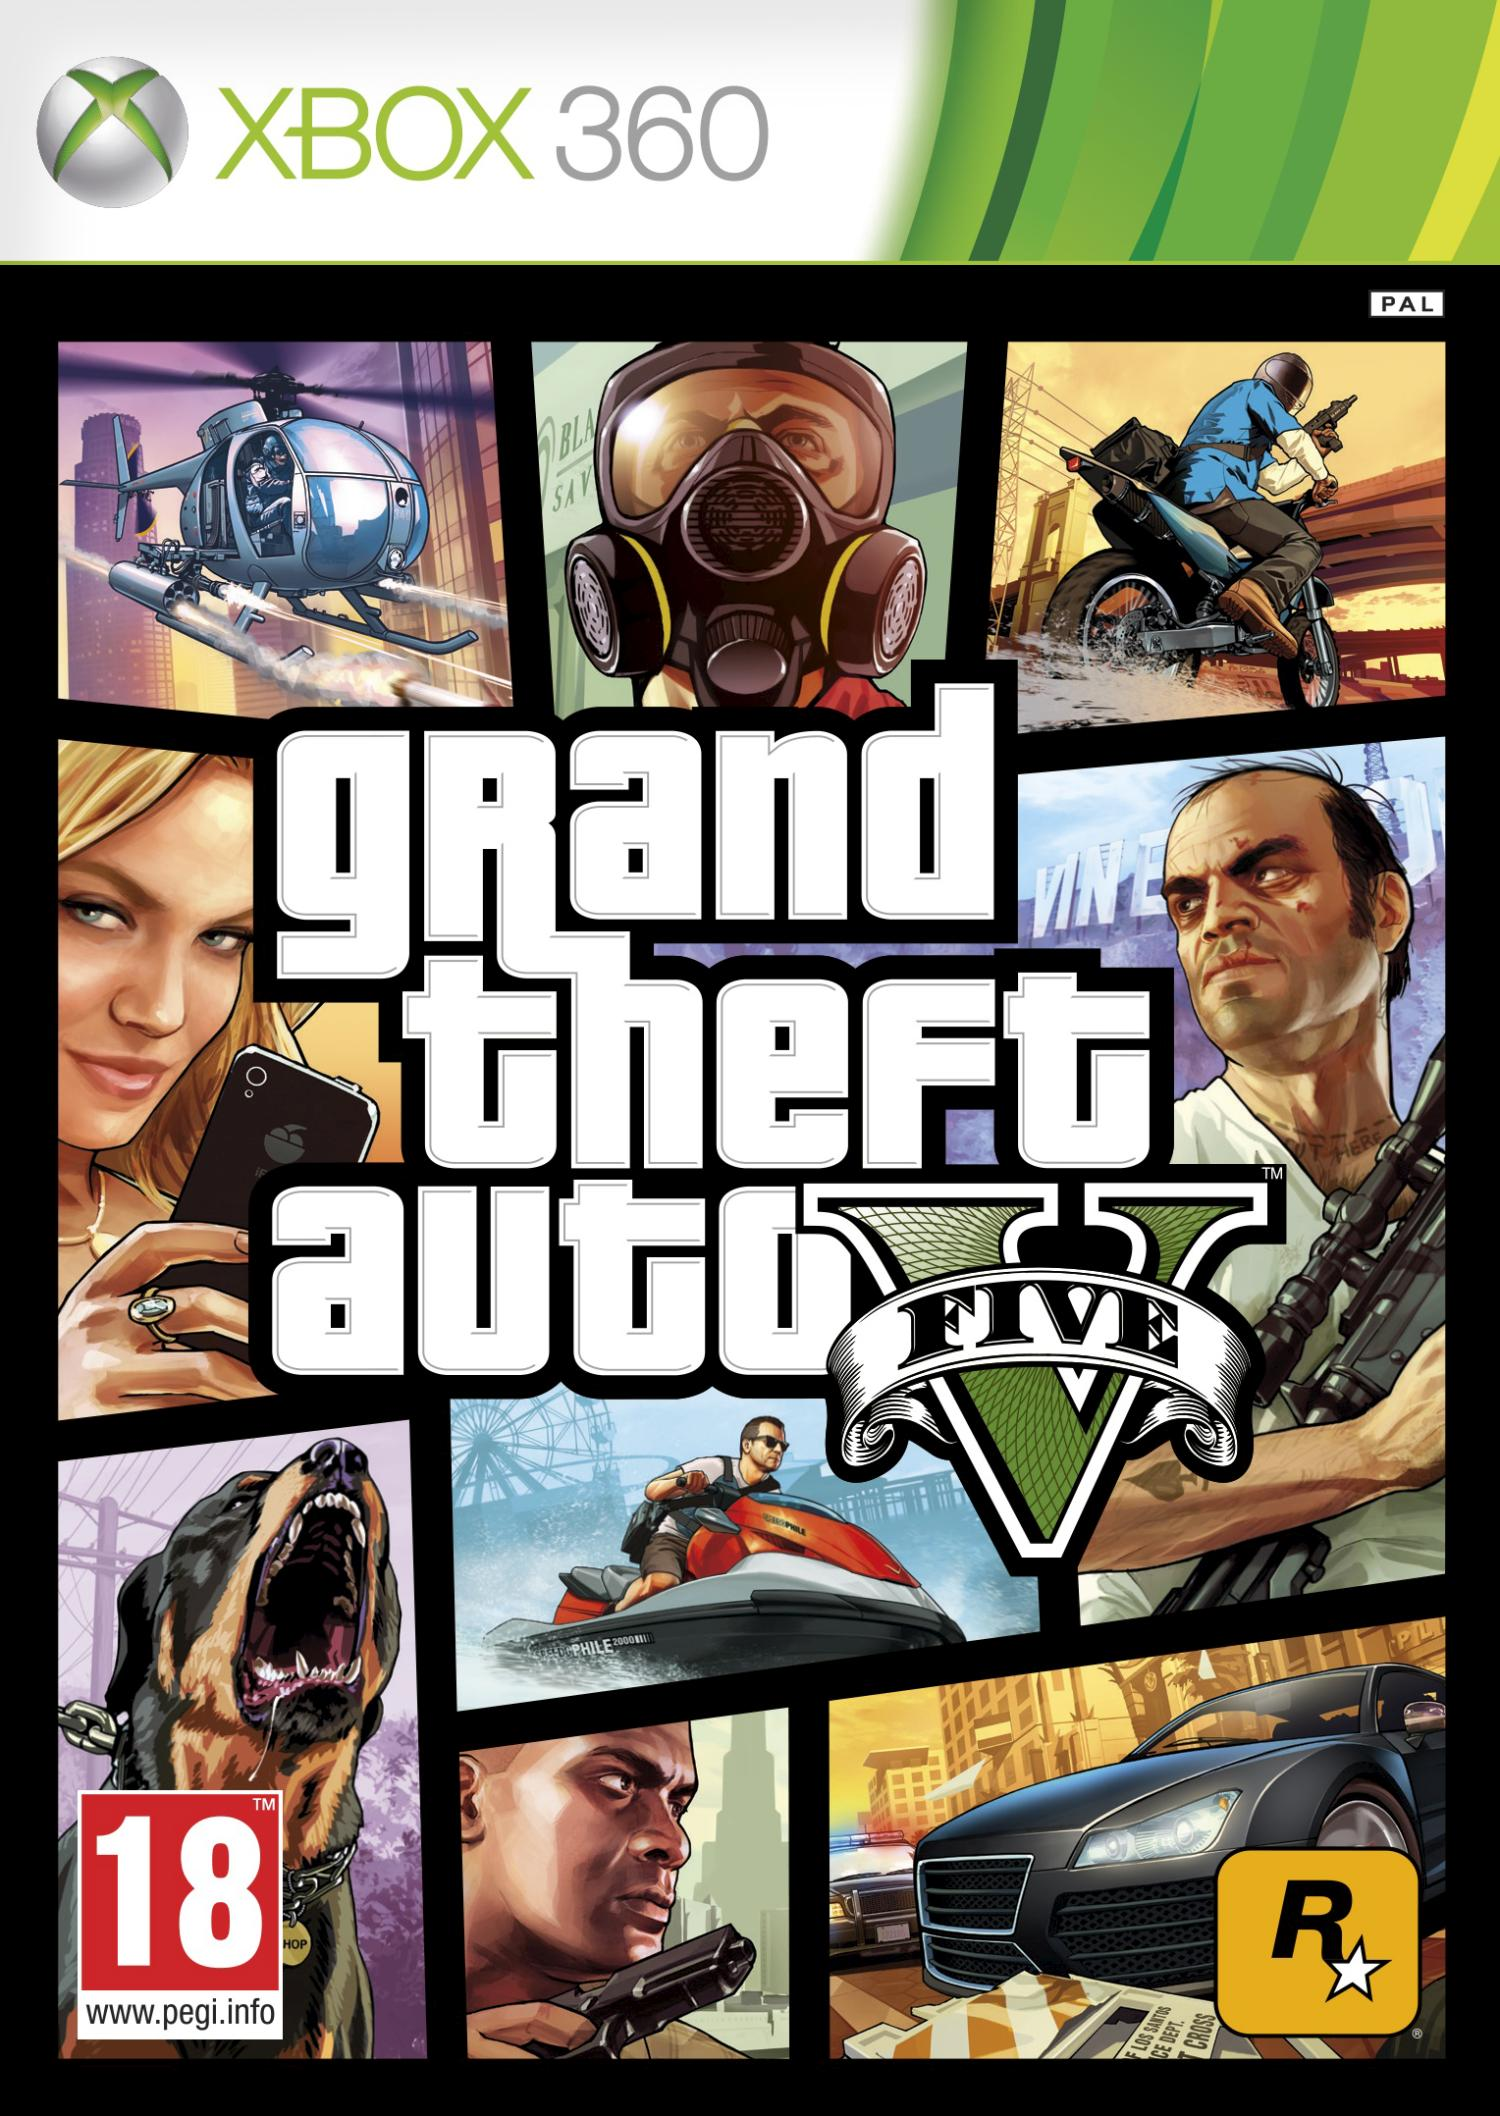 XBOX 360 ¦ ACCOUNT ¦ GTA V ¦ Grand Theft Auto